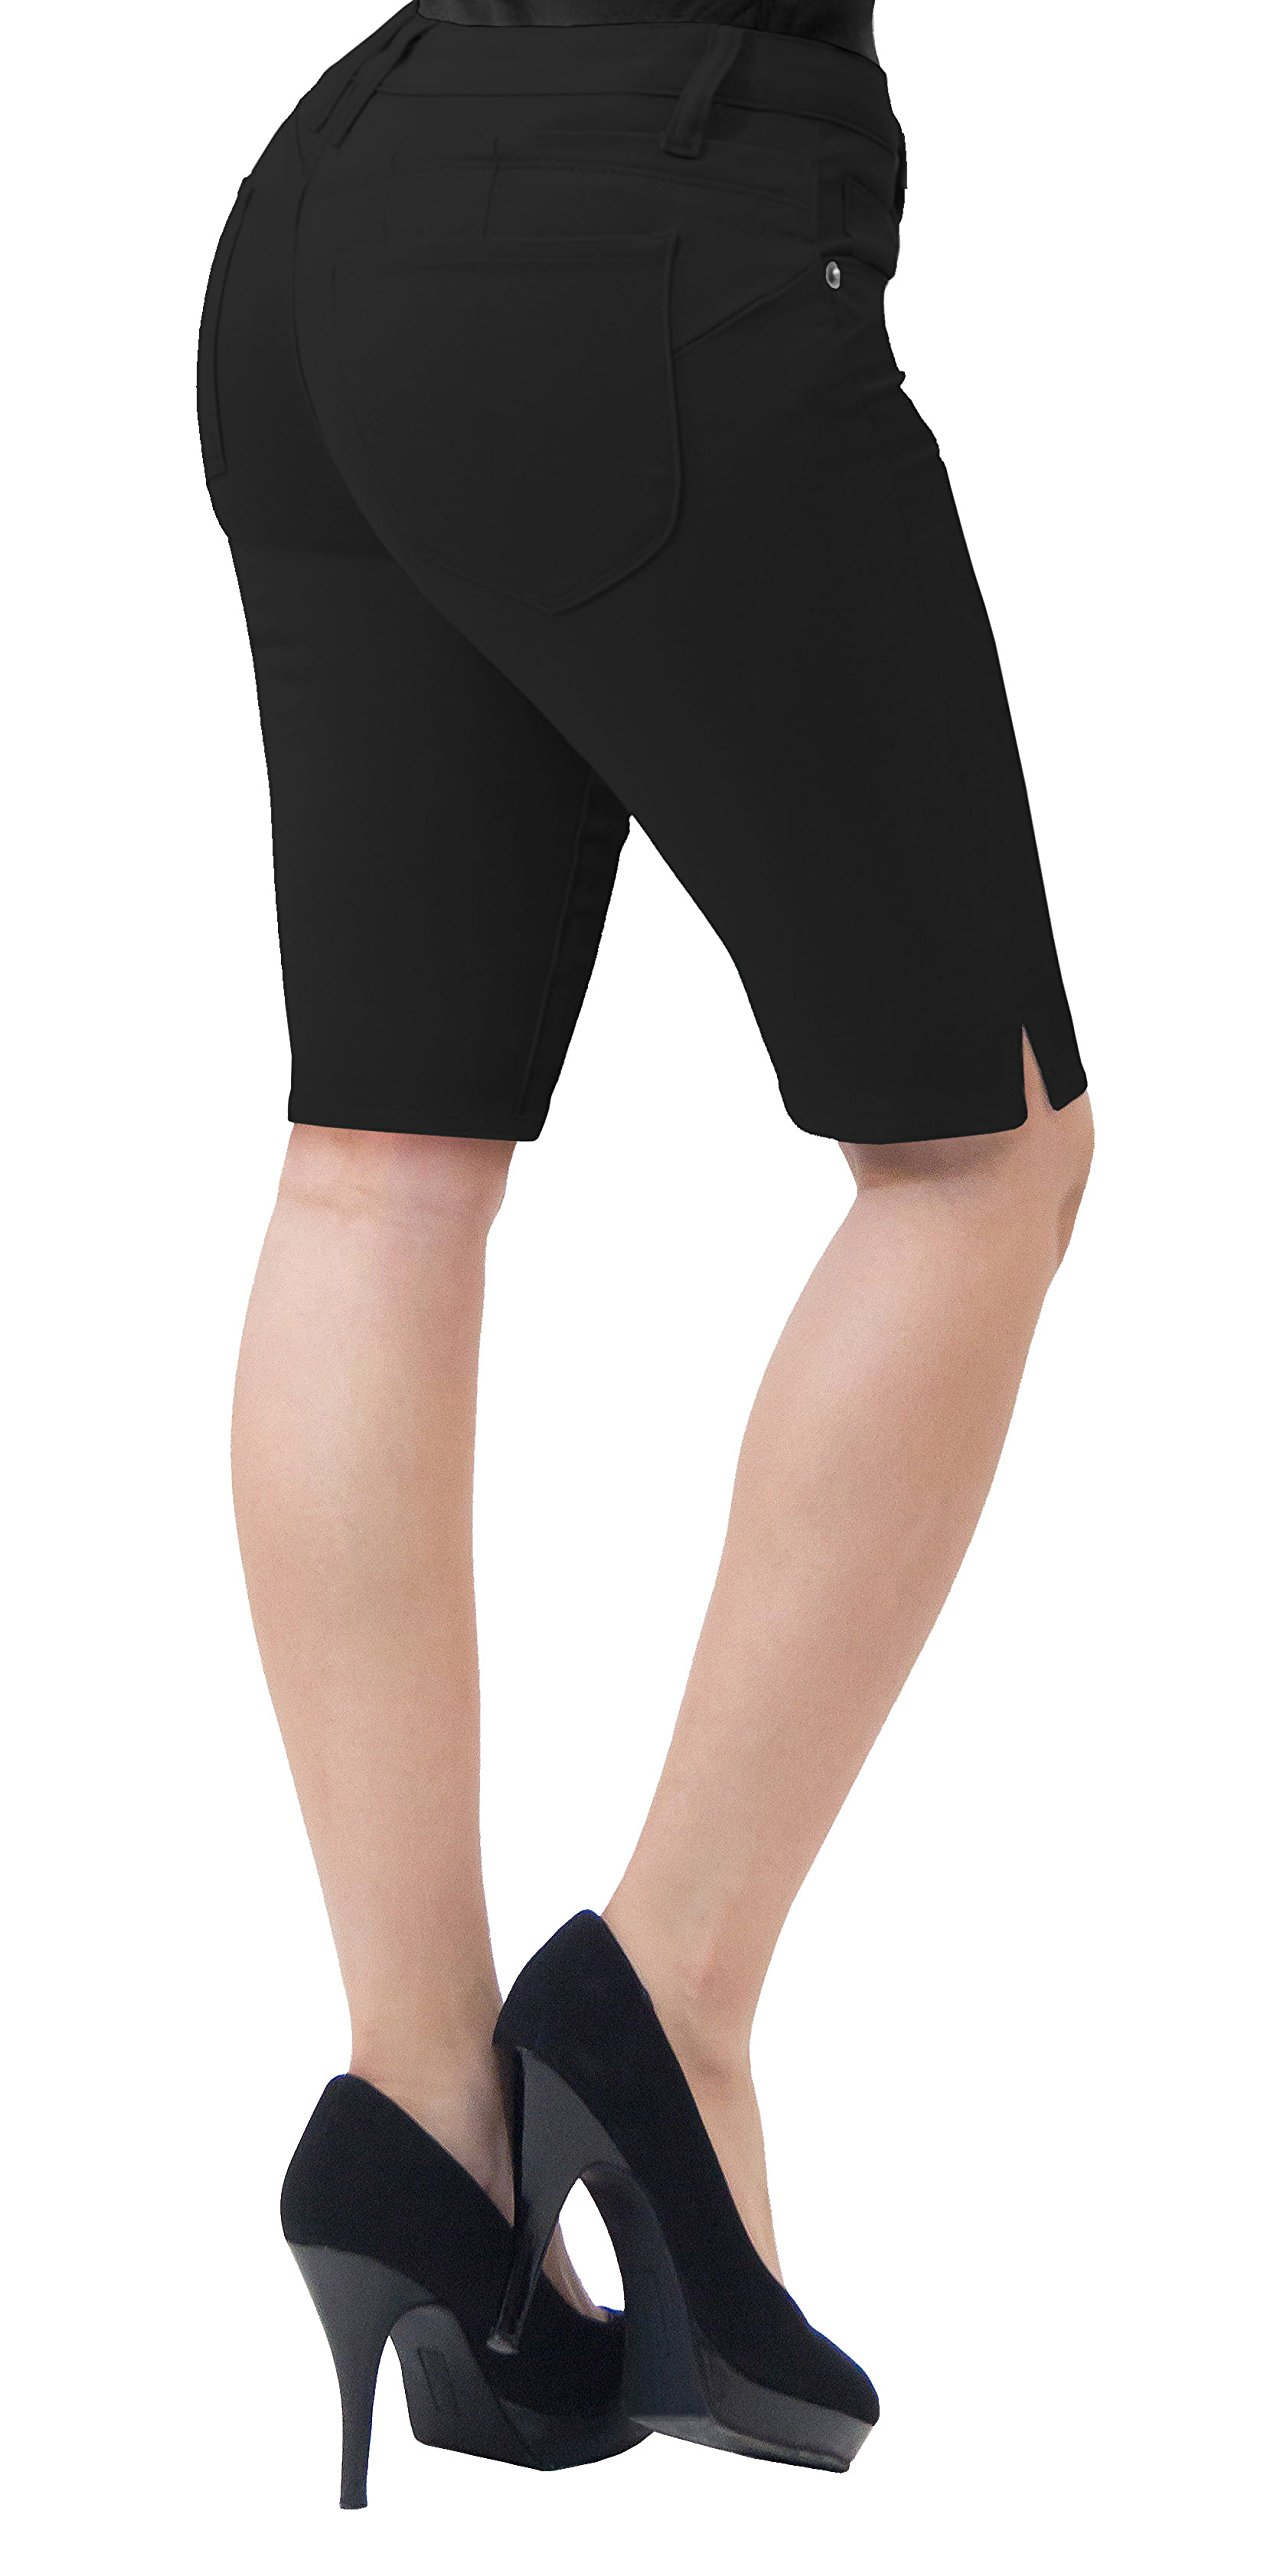 HyBrid & Company Super Comfy Stretch Bermuda Shorts B43300X Black 18